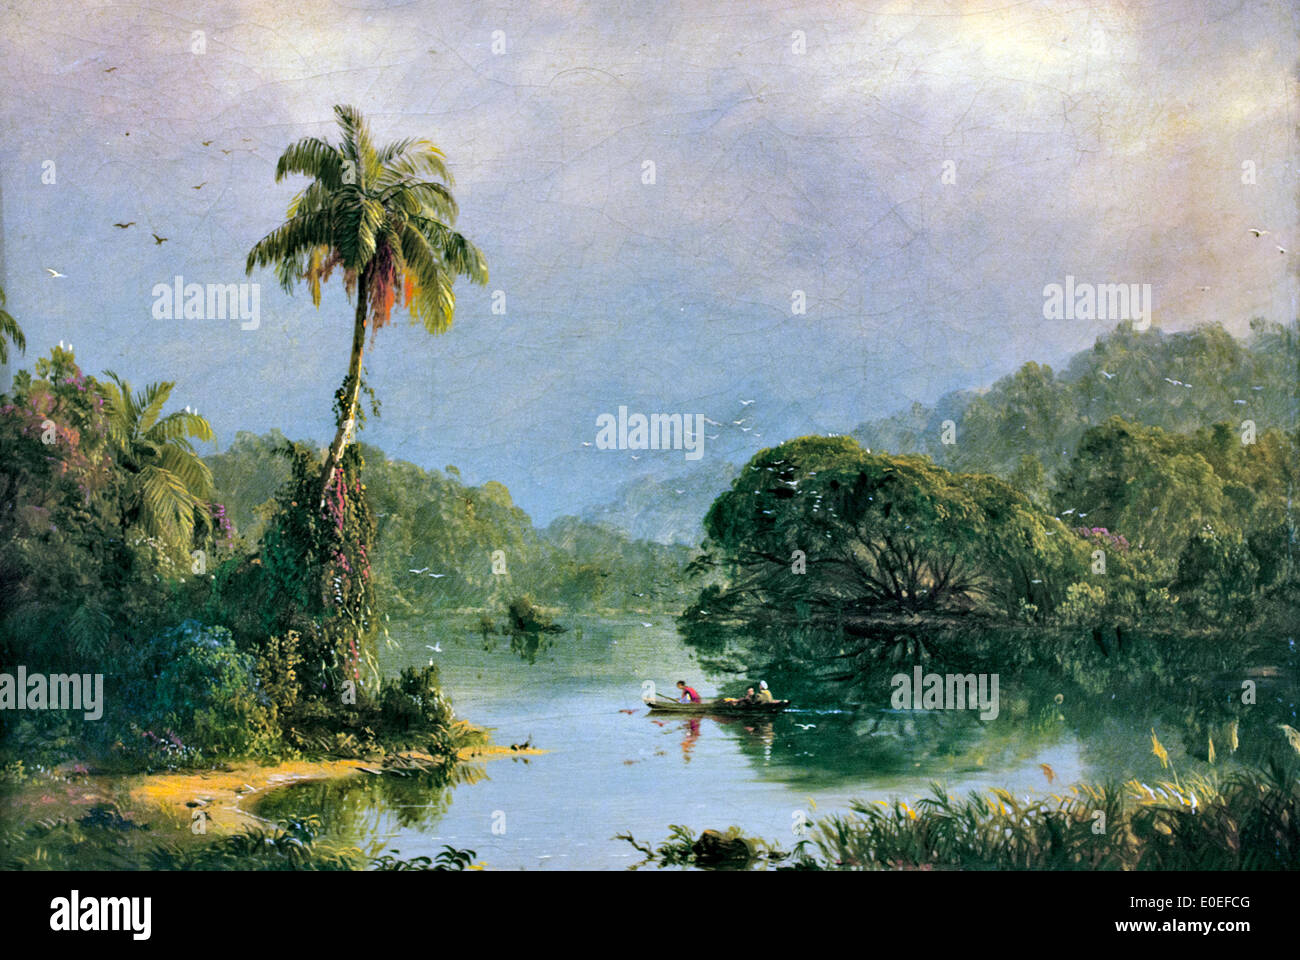 tropical paintings stock photos tropical paintings stock images